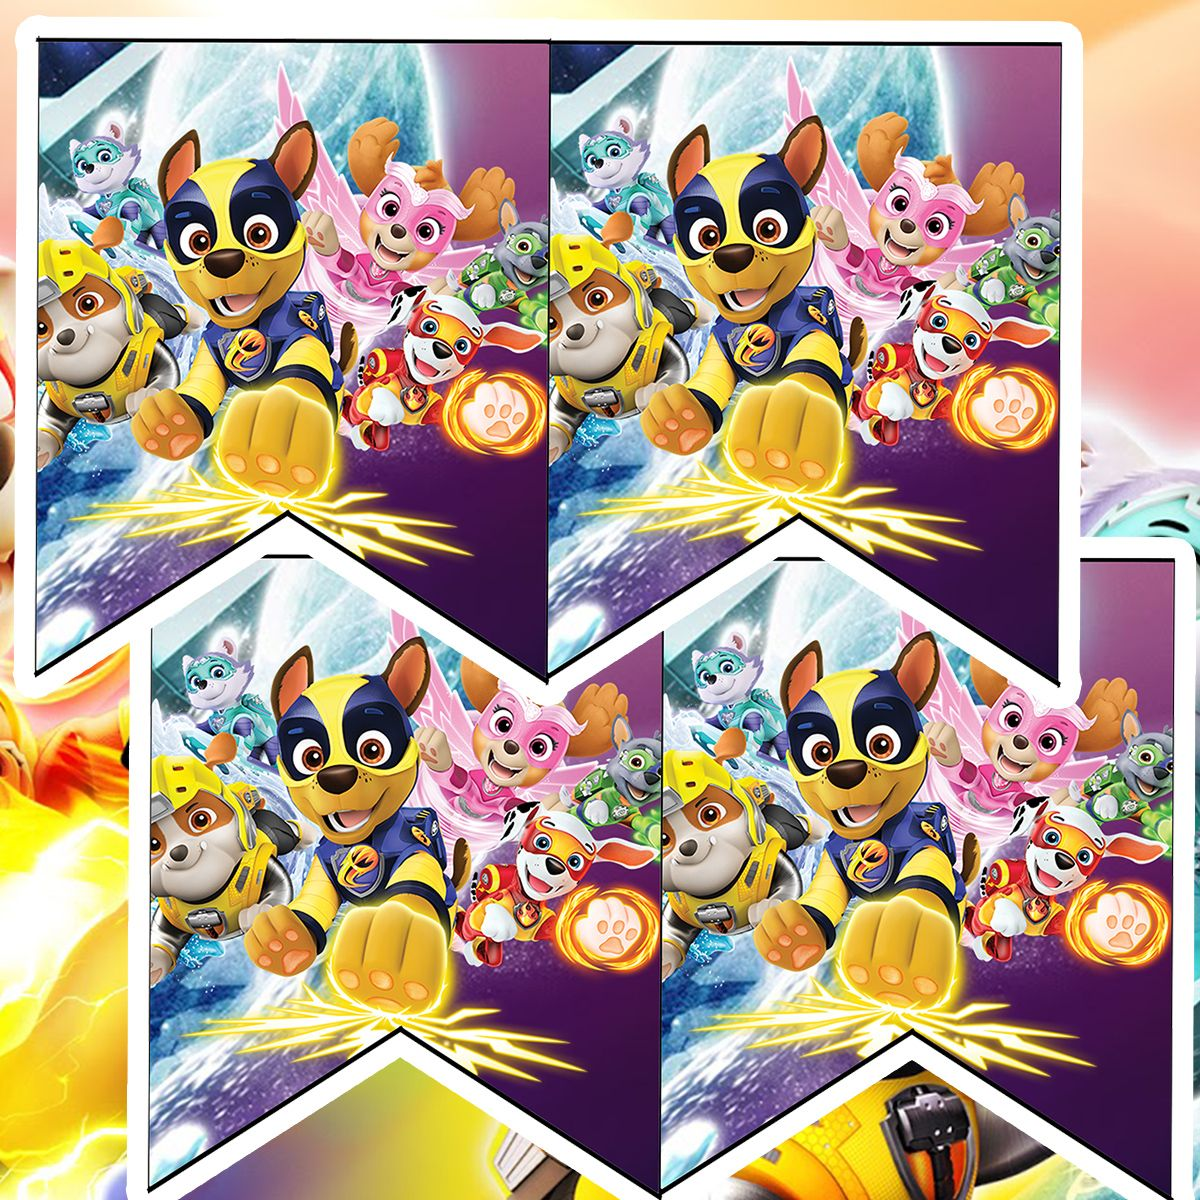 Paw Patrol Mighty Pups Birthday Party Printable Files Paw Patrol Party Printables Paw Patrol Party Paw Patrol Birthday Girl